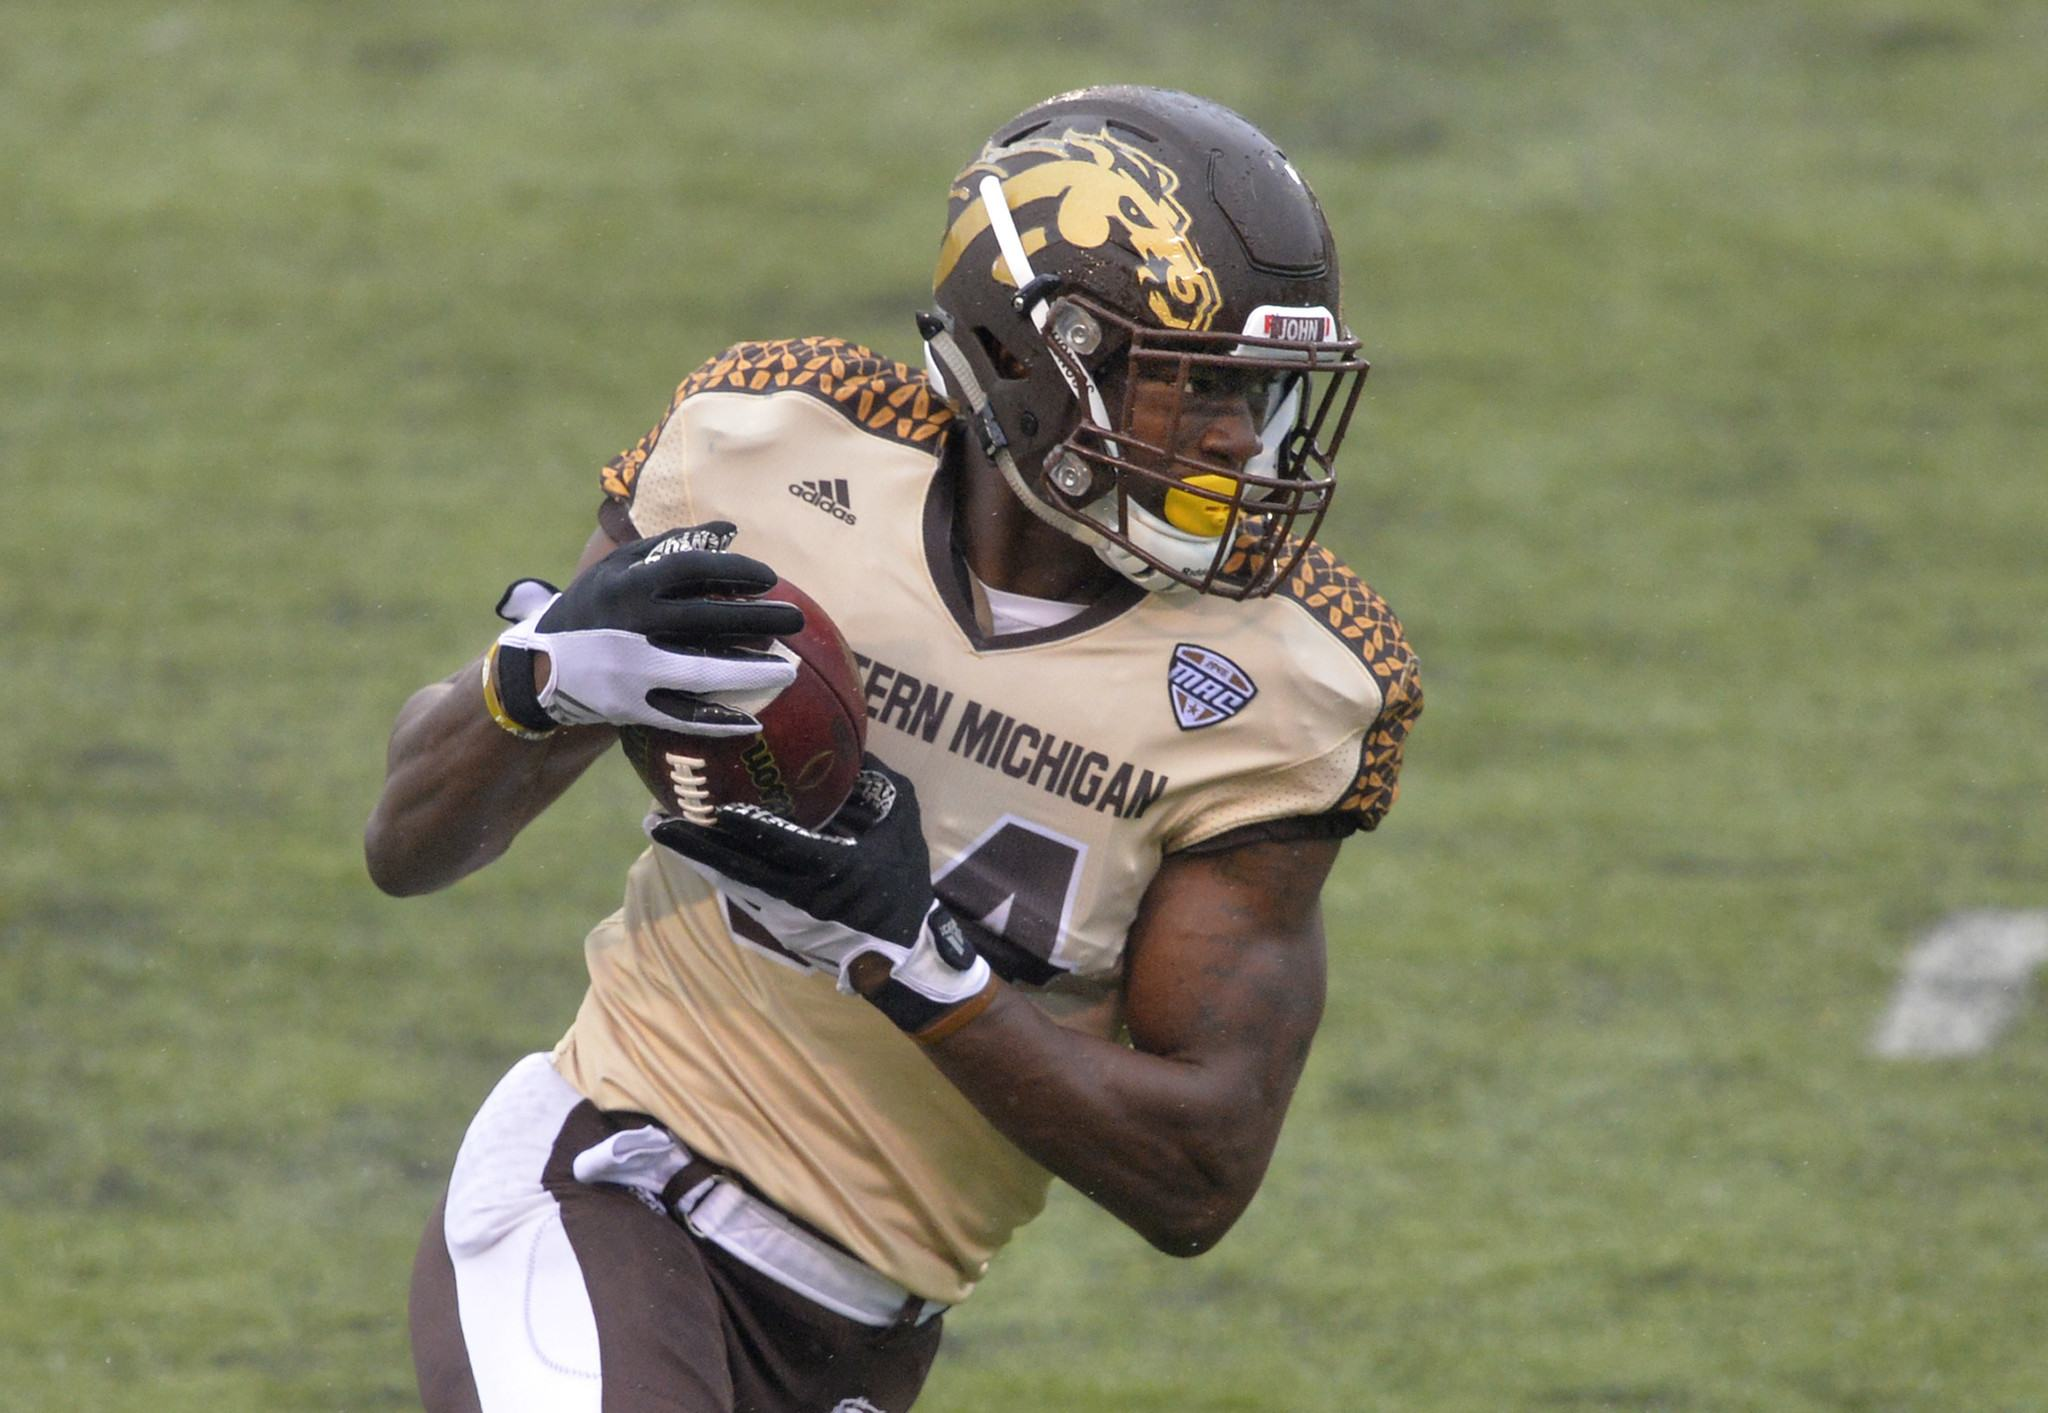 Cowboys Draft: Injuries Could Land Western Michigan's Corey Davis In Dallas